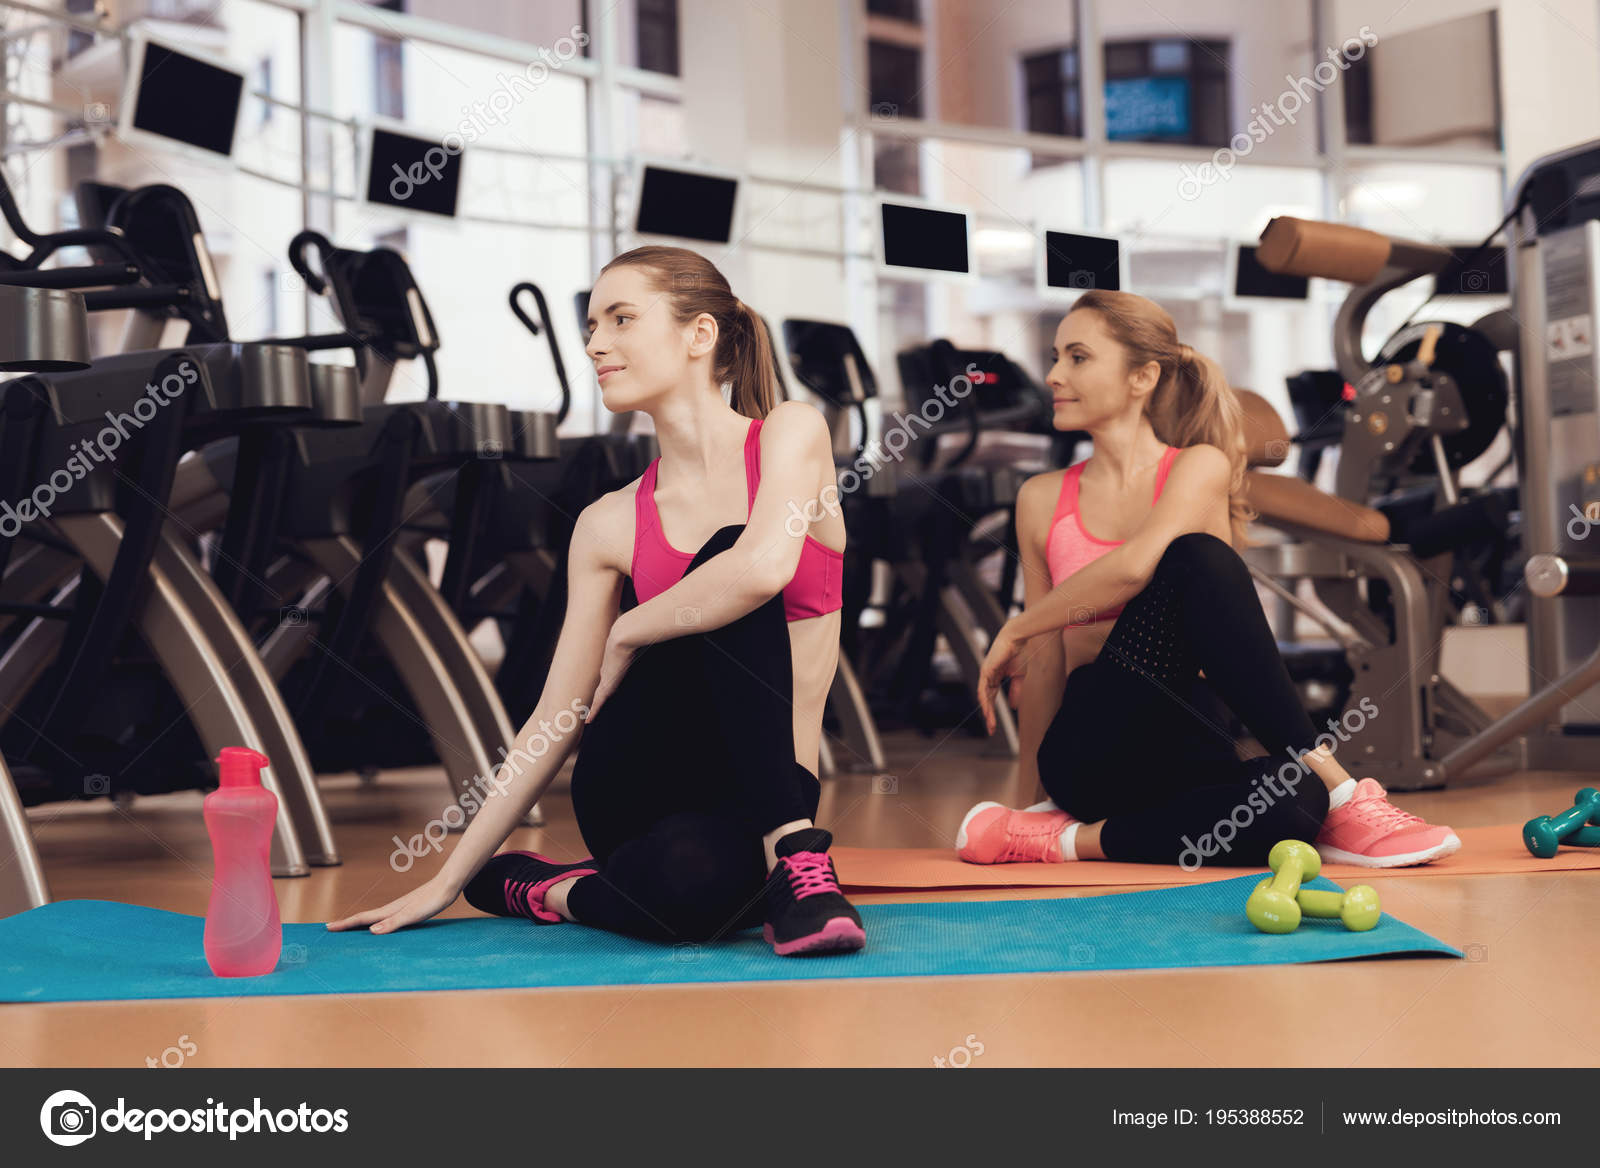 Mother Daughter Sportswear Doing Yoga Poses Gym Stock Photo